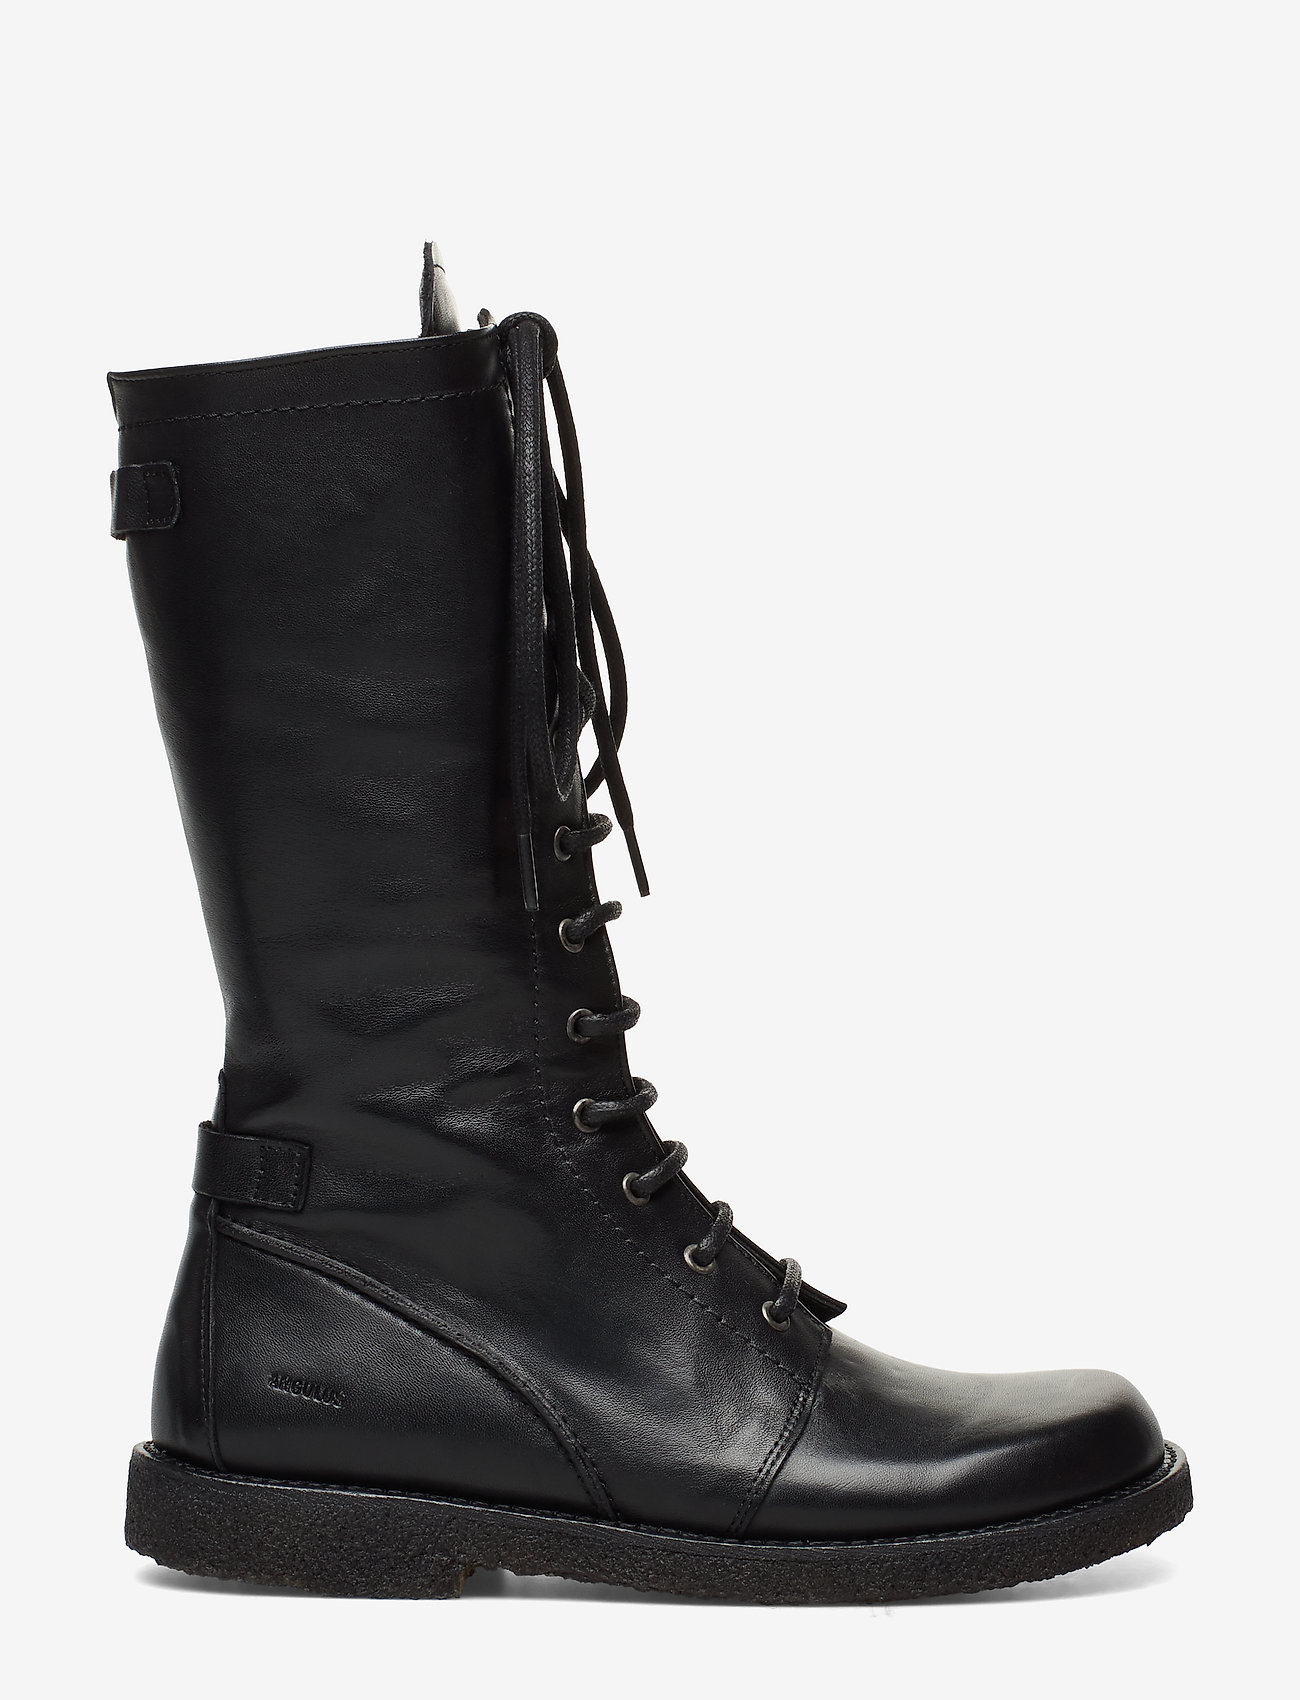 ANGULUS - Long boot with laces. - langskaftede - 1604 black - 1